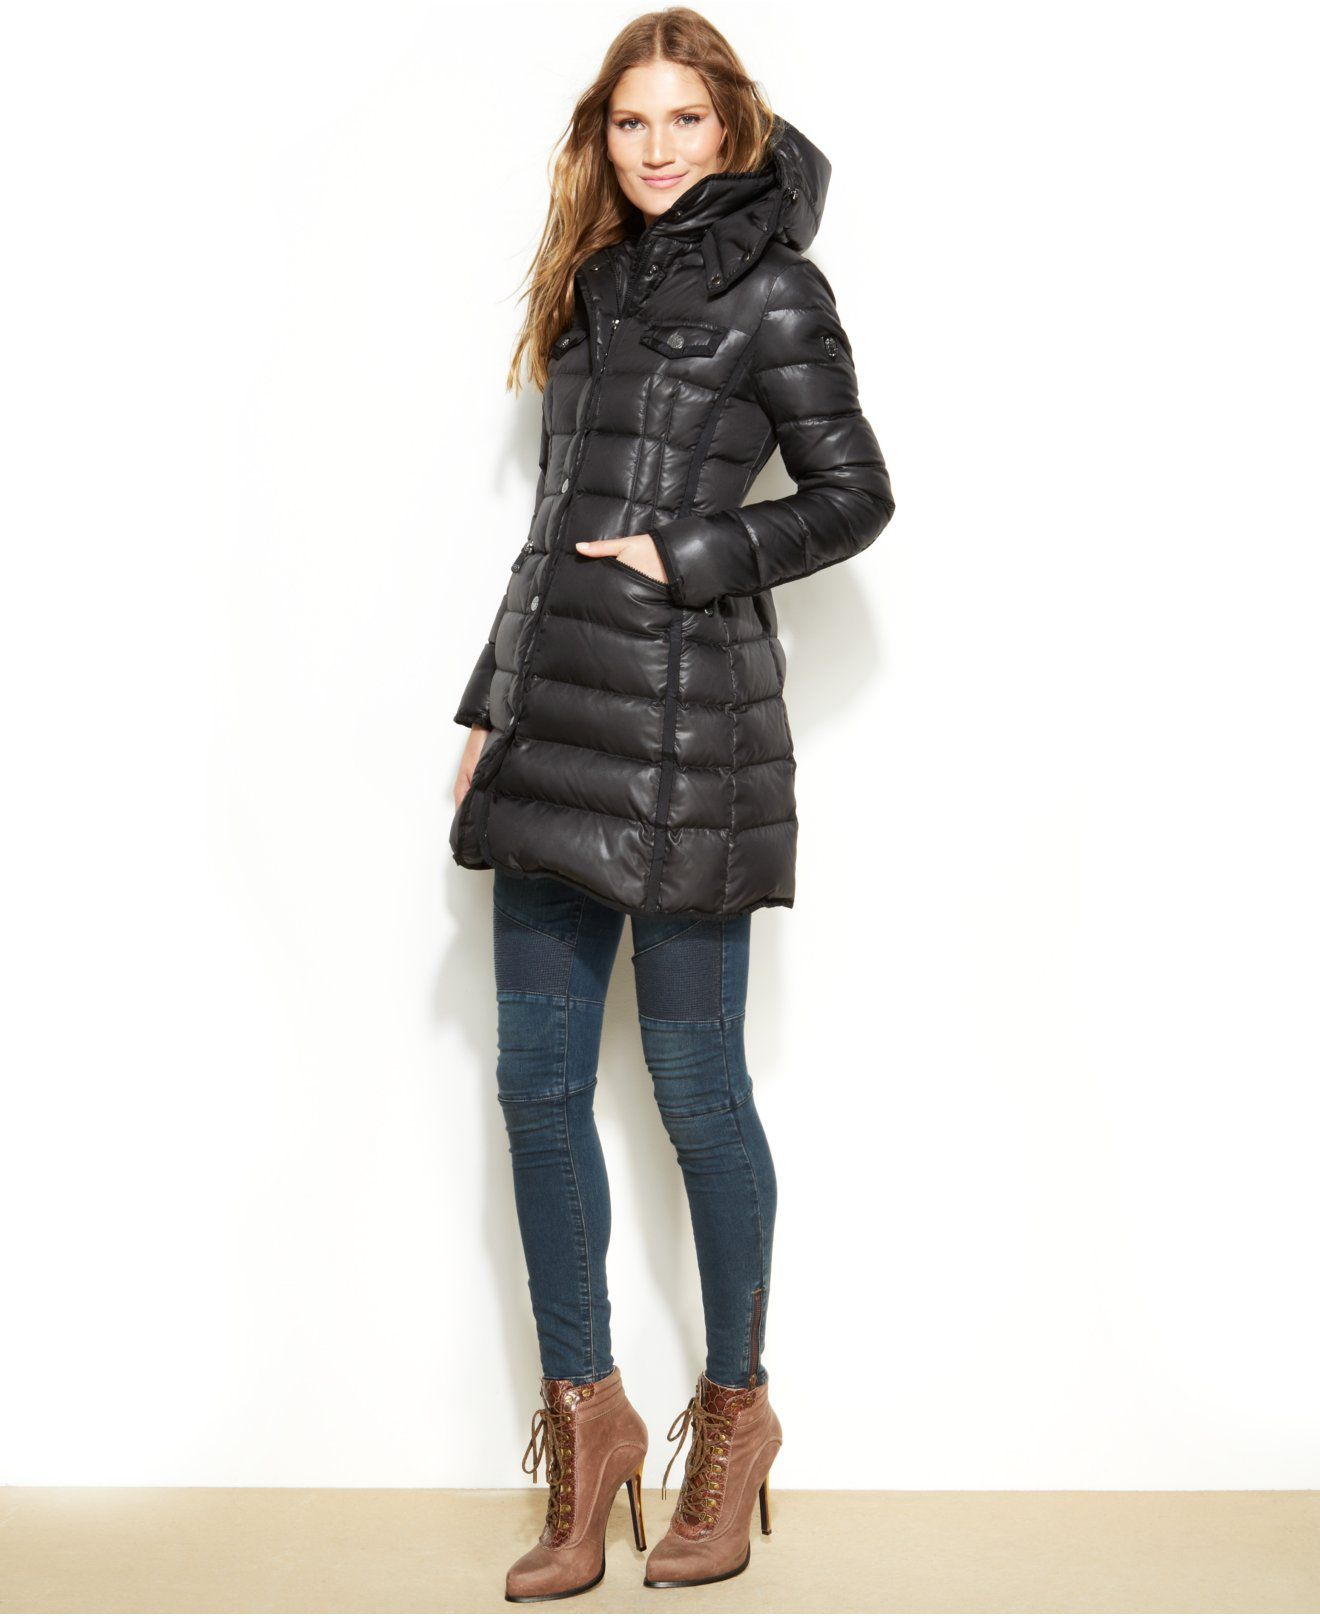 Vince Camuto Hooded Quilted Puffer Coat - Coats - Women - Macy's ...